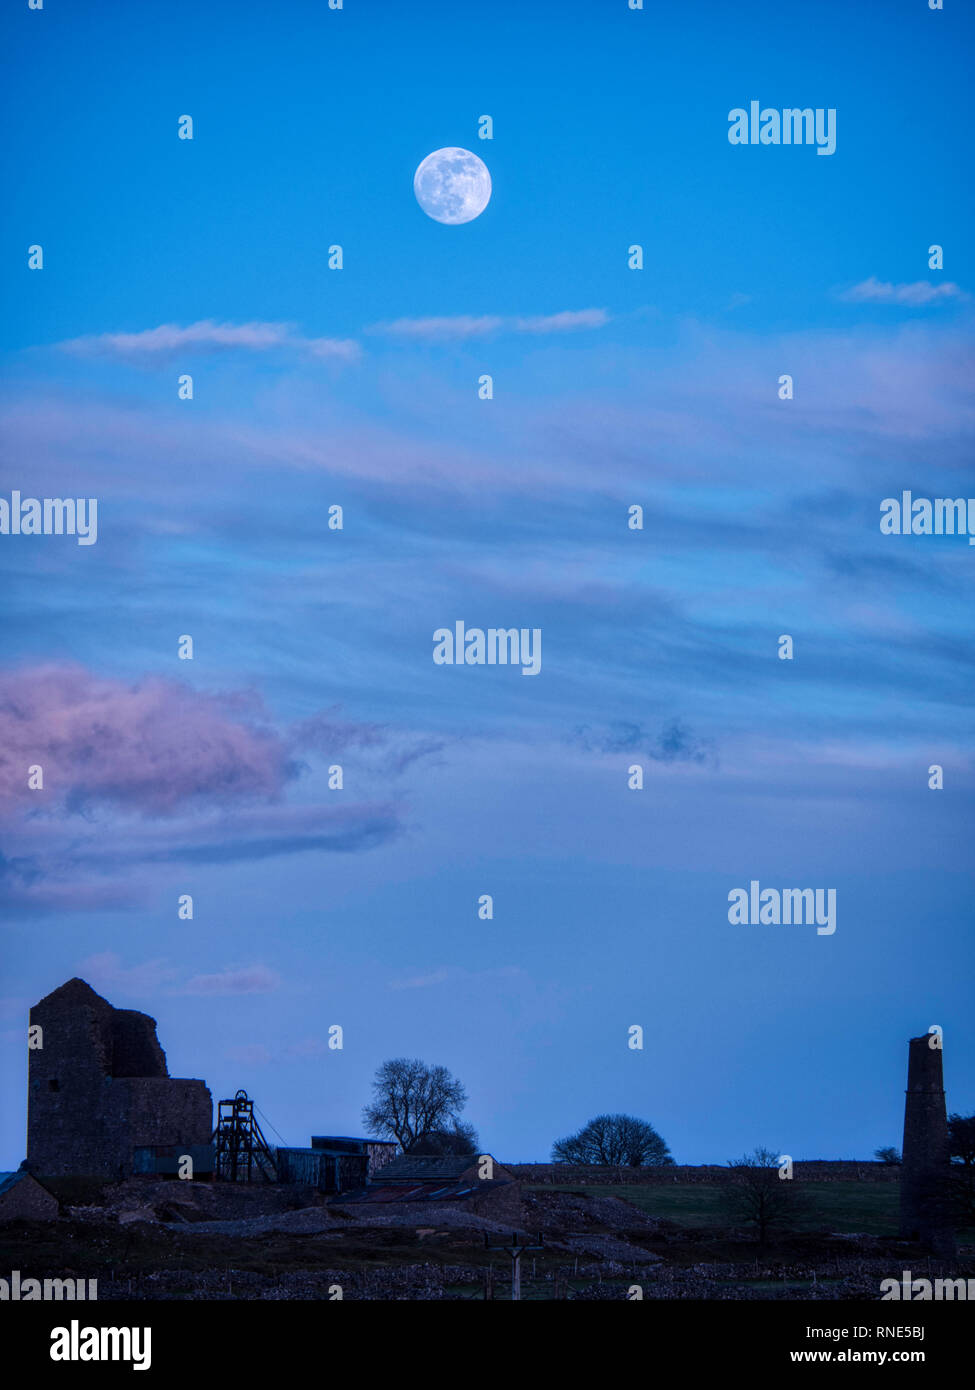 Derbyshire, UK. 18th Feb, 2019. Super Snow Full Moon rising over Magpie Mine historic buildings in the Peak District National Park, Derbyshire.The full moon will reach its closest point to Earth at 9.06 am on Tuesday 19th February 2019. It will be the biggest and brightest of the entire year appearing 14% bigger than usual and 30% brighter. Credit: Doug Blane/Alamy Live News Stock Photo